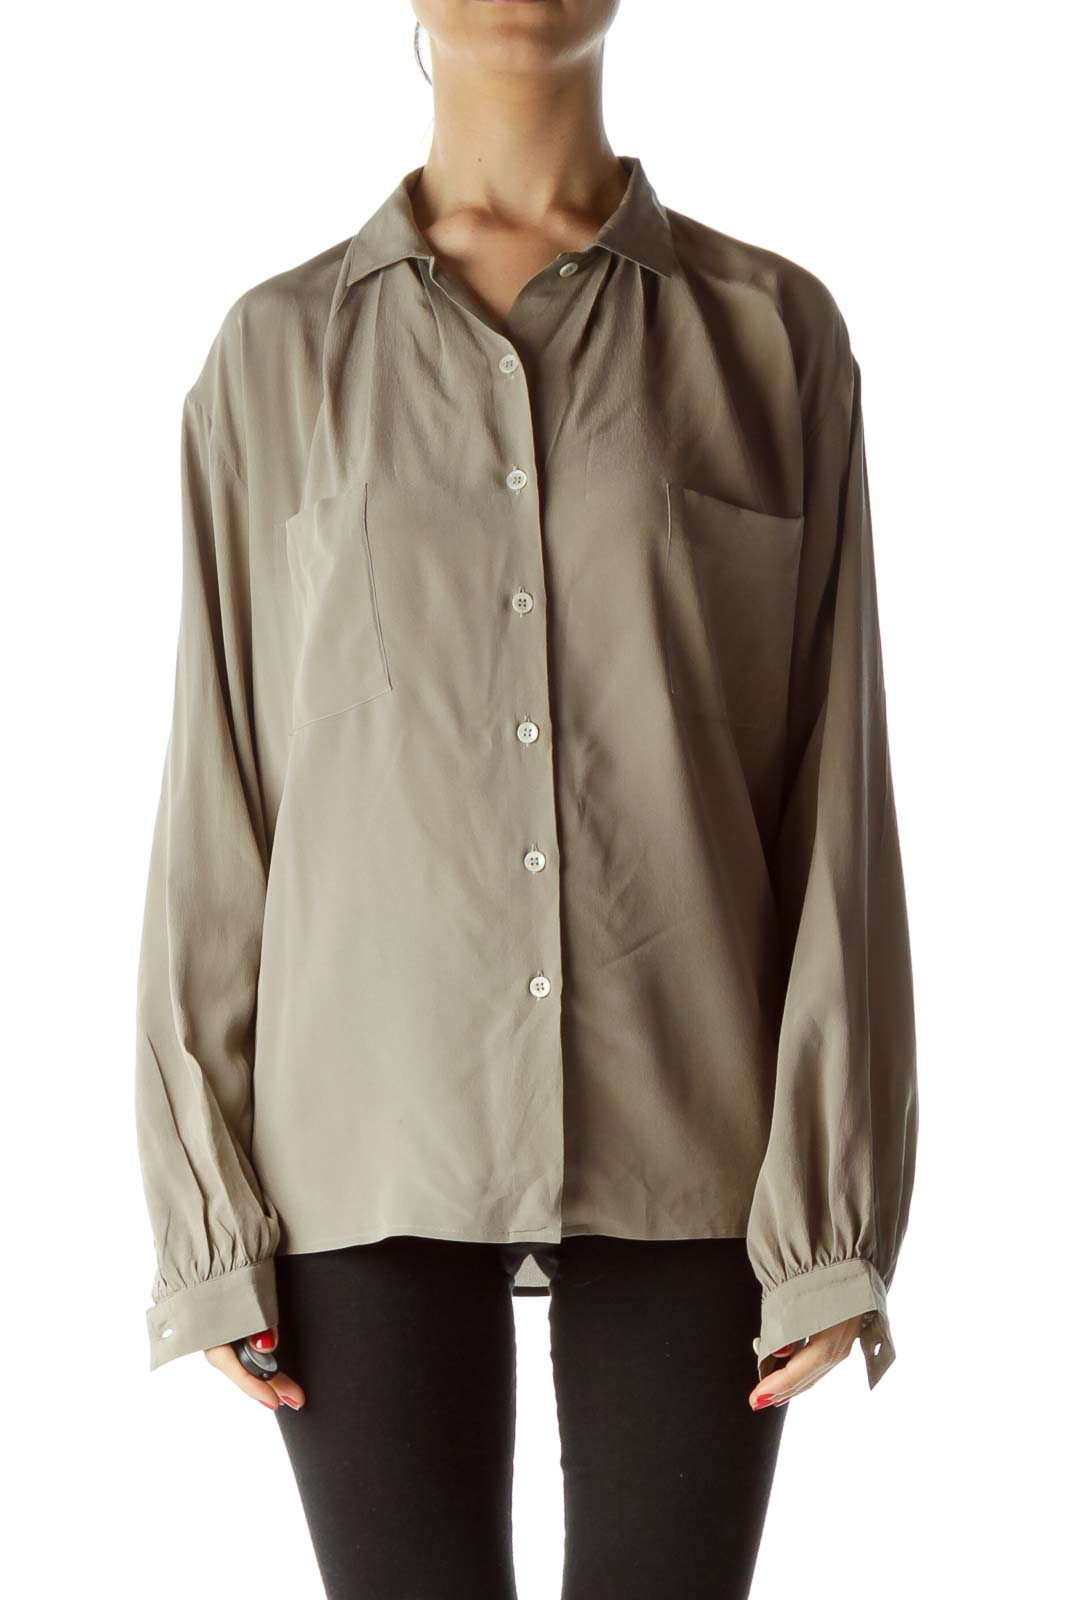 Gray 100% Silk Buttoned Shirt with Pockets